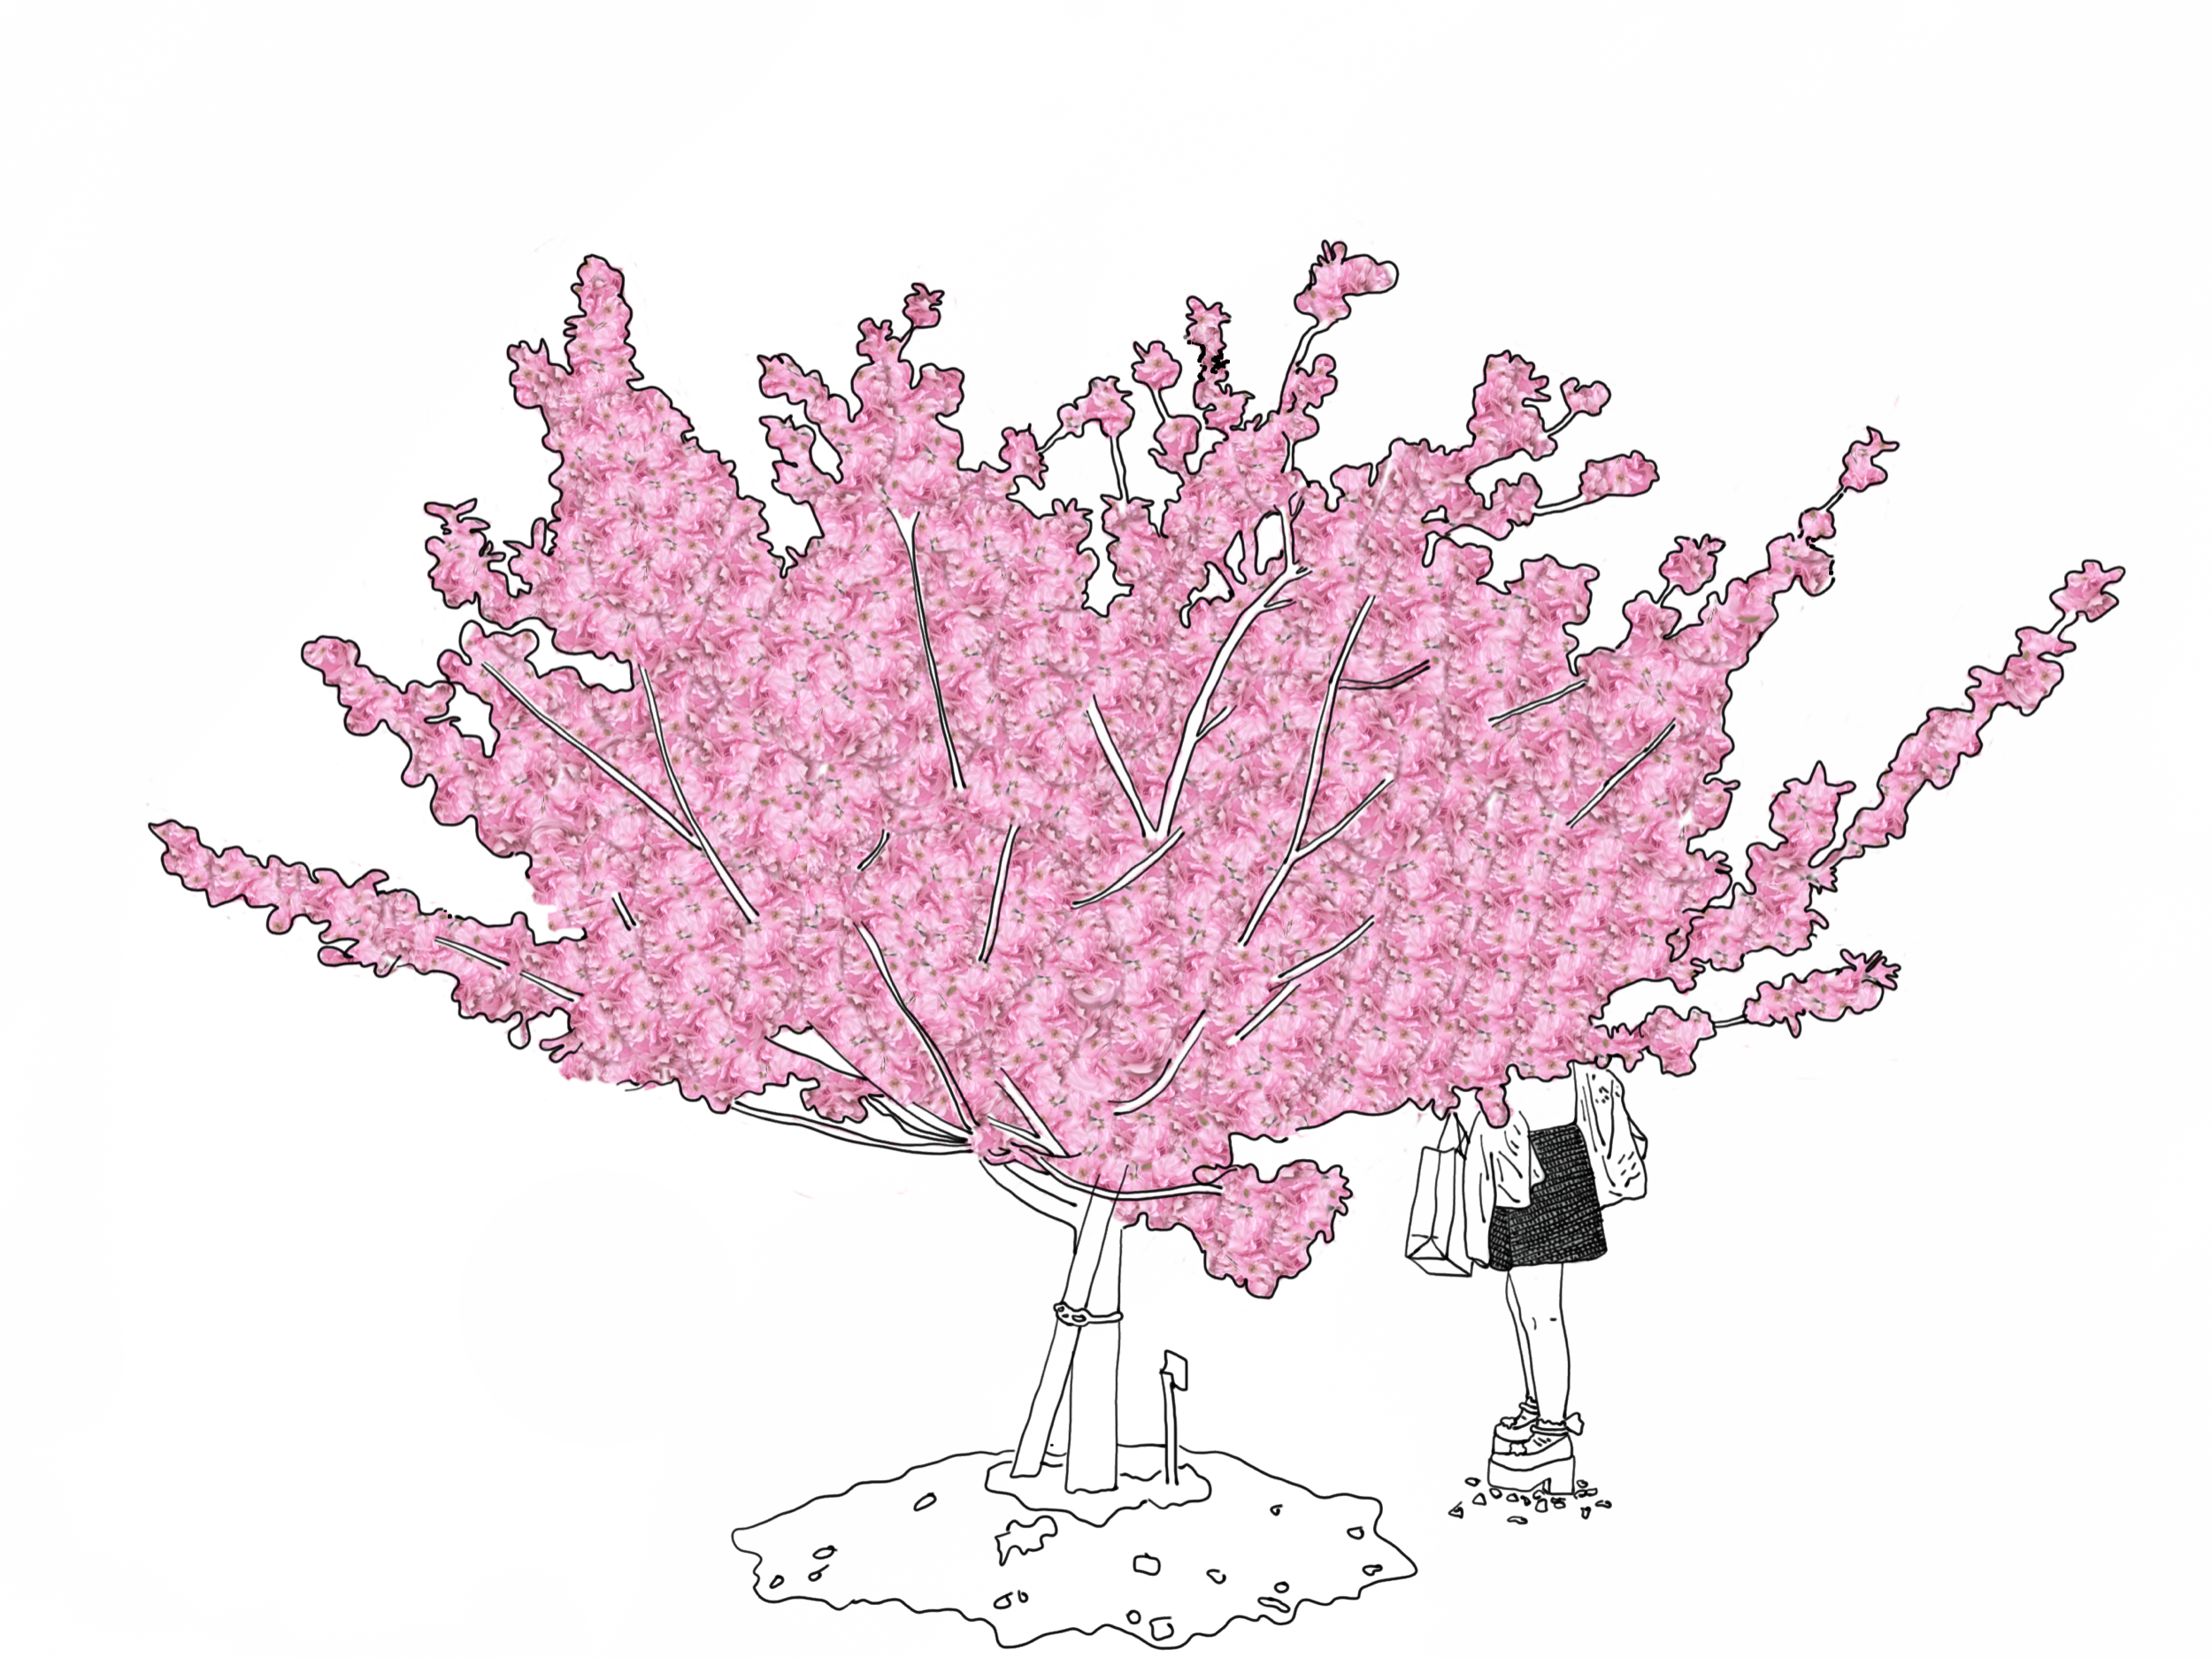 jordan_kushins_japan_kyoto_cherry_blossoms.png